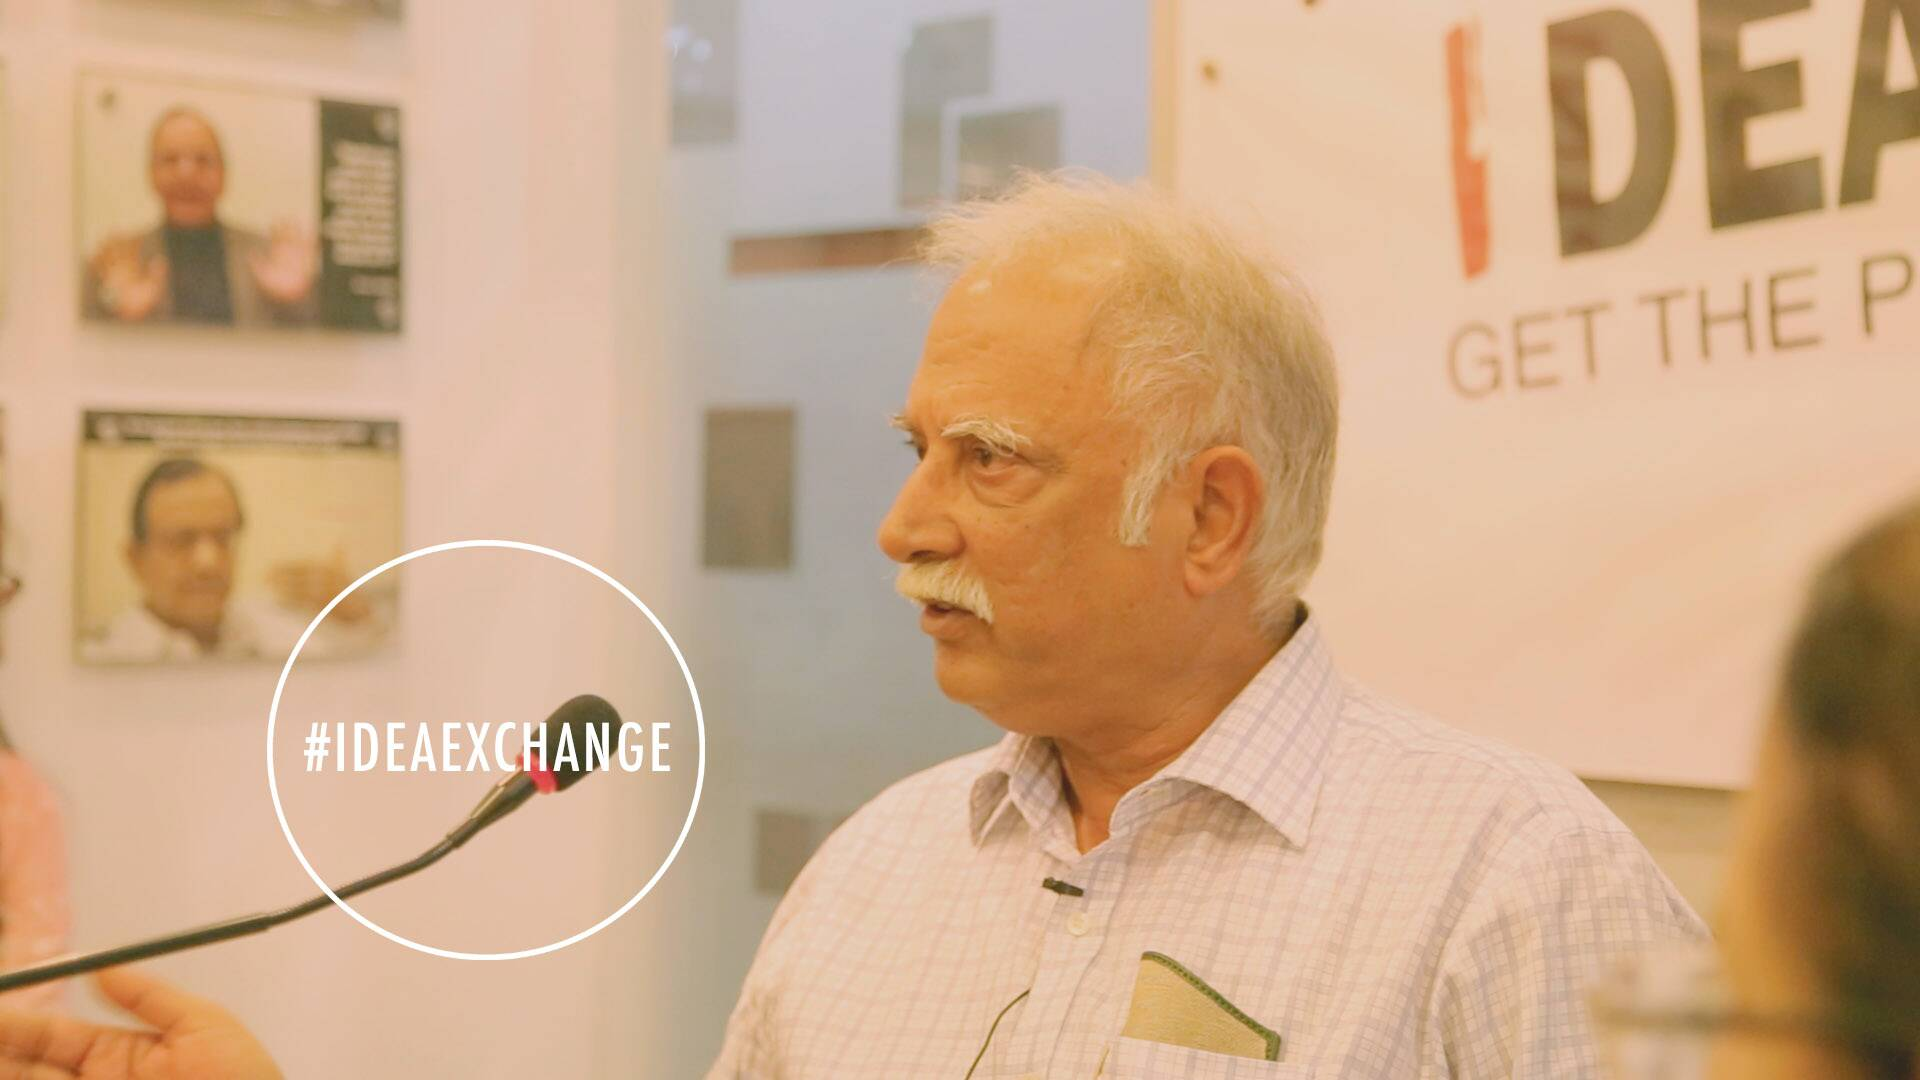 There is no such thing as a low-cost airport: Gajapathi Raju, Civil Aviation Minister